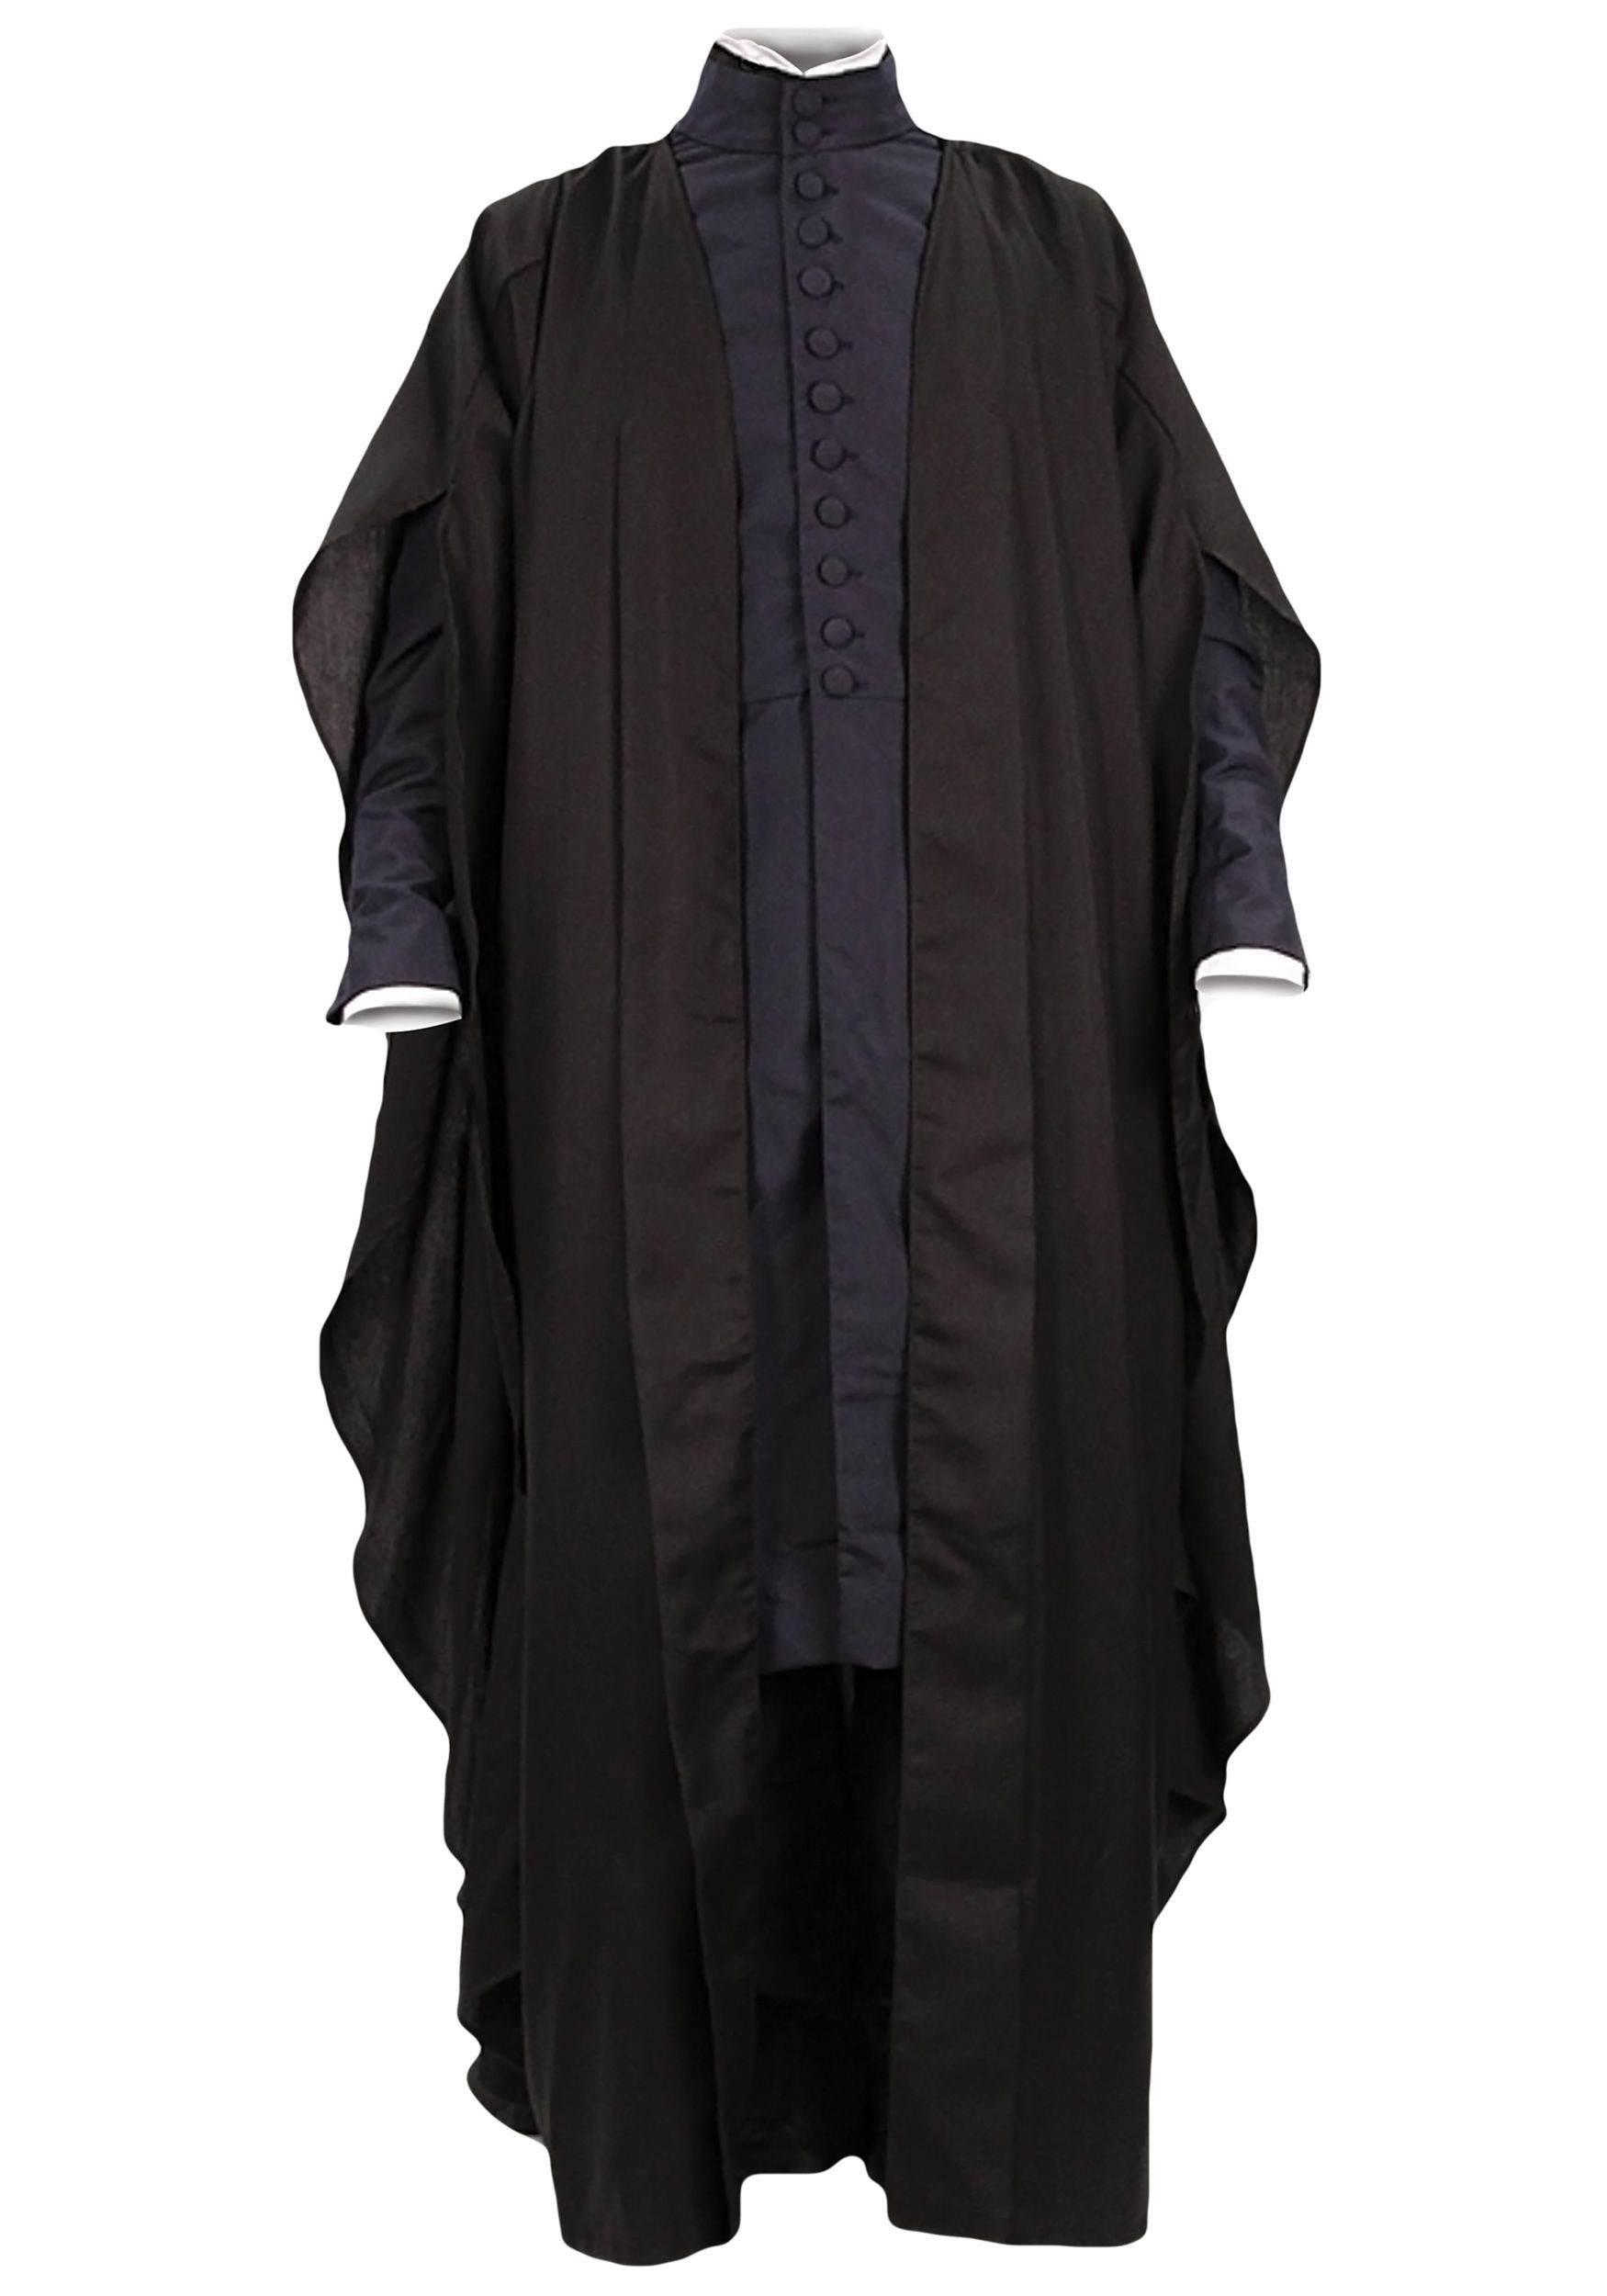 Harry Potter Halloween Severus Snape Cosplay Outfit Black Cape Costumes Carnival